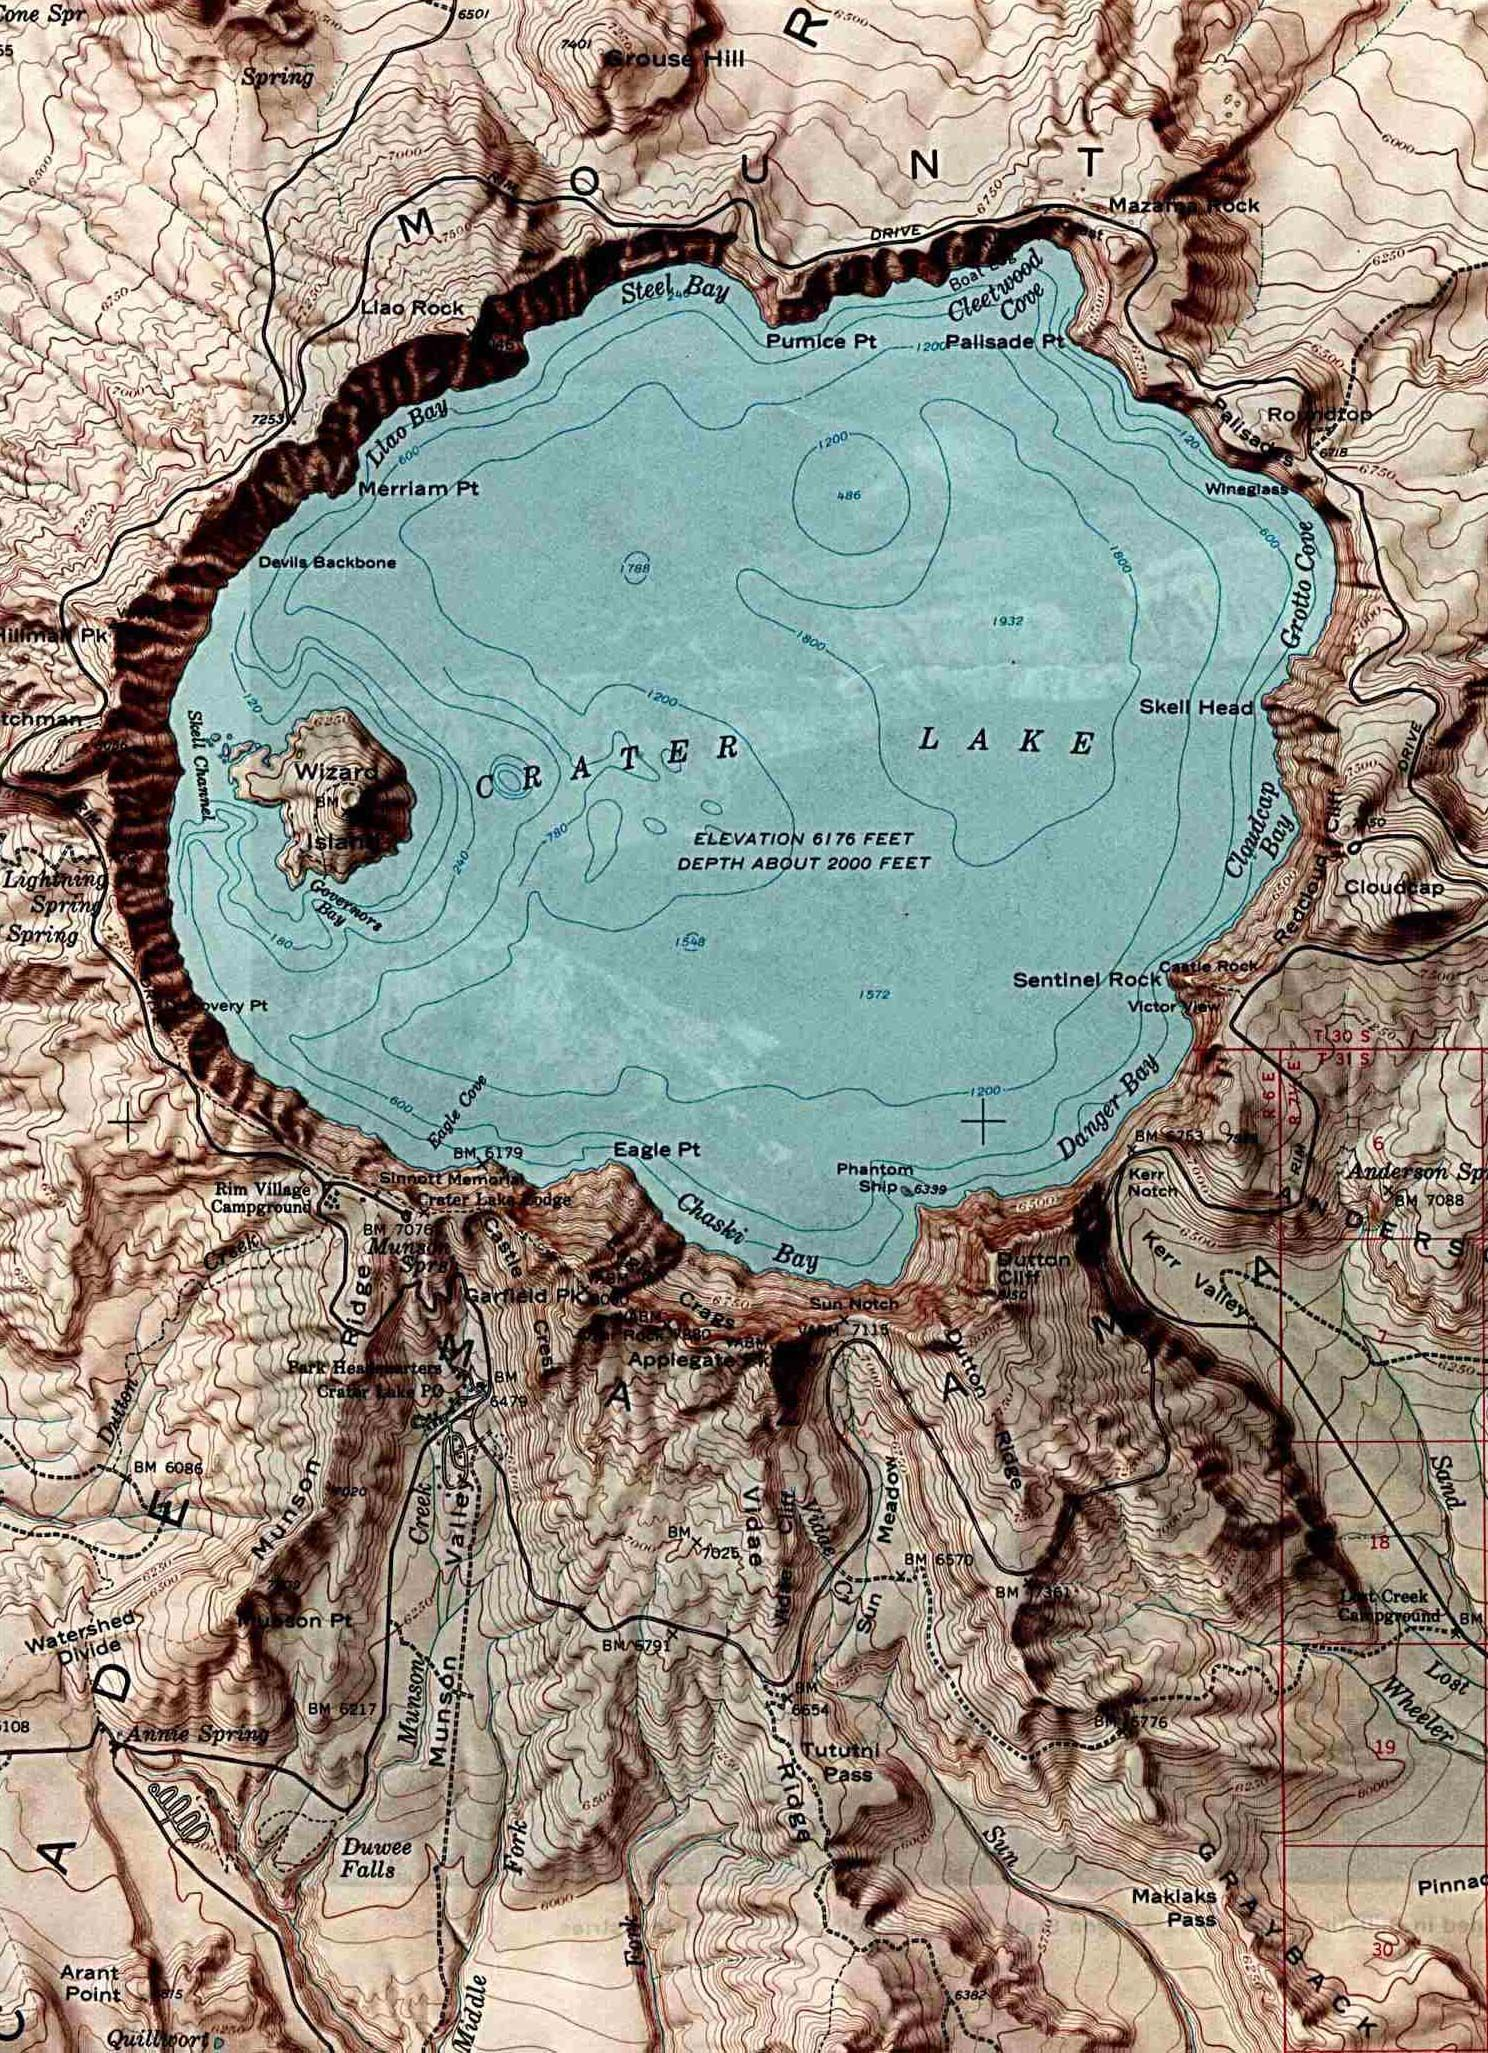 Crater Lake National Park Oregon Places Id Like To Go - Map of national parks in northwest us